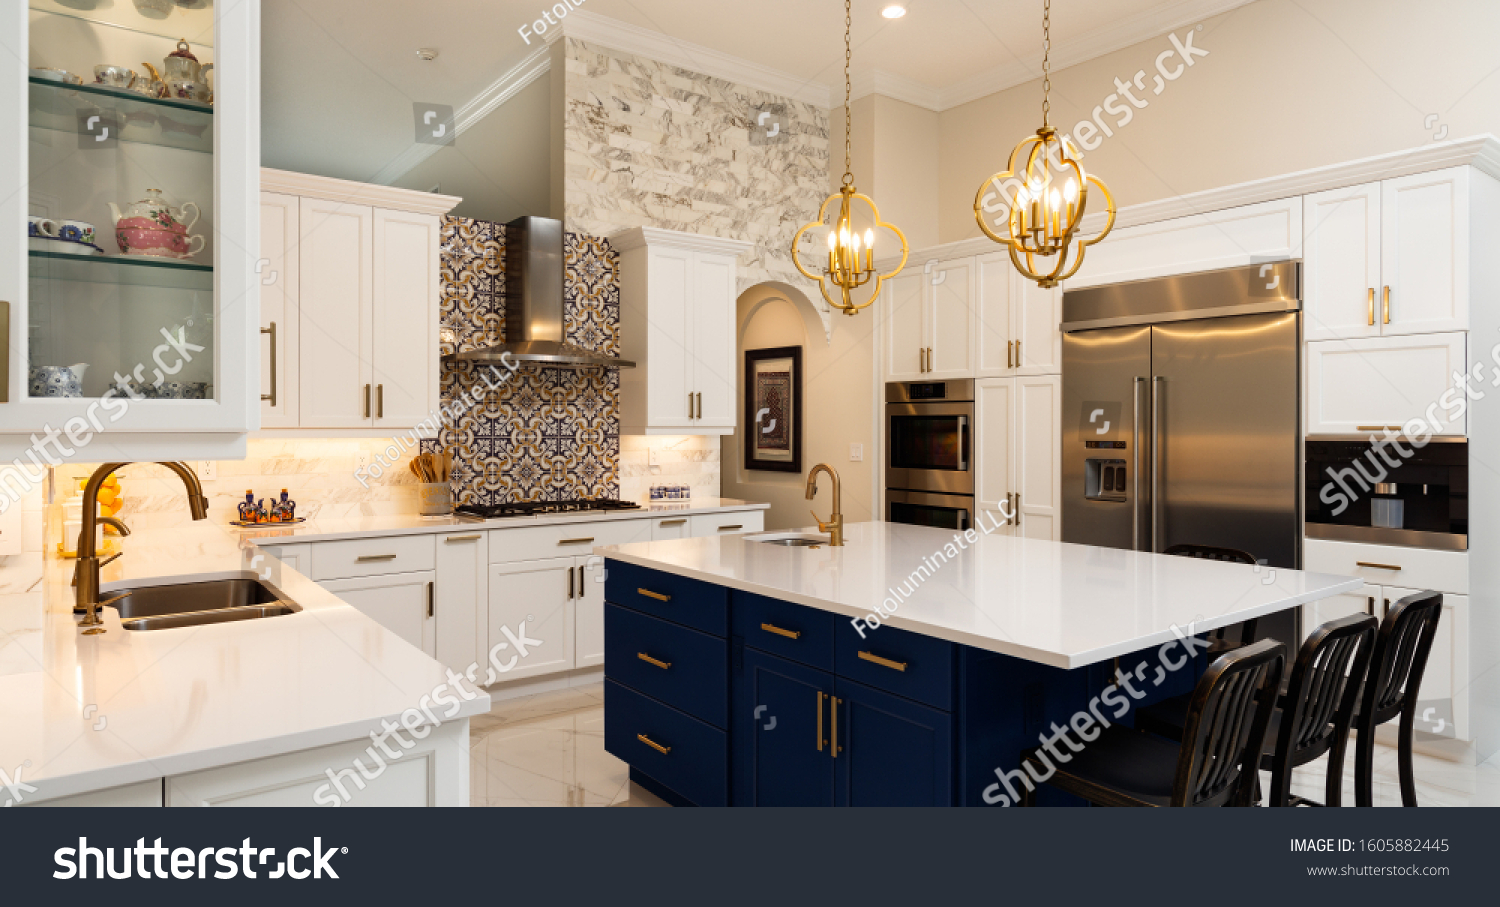 Beautiful luxury home kitchen with white cabinets. #1605882445